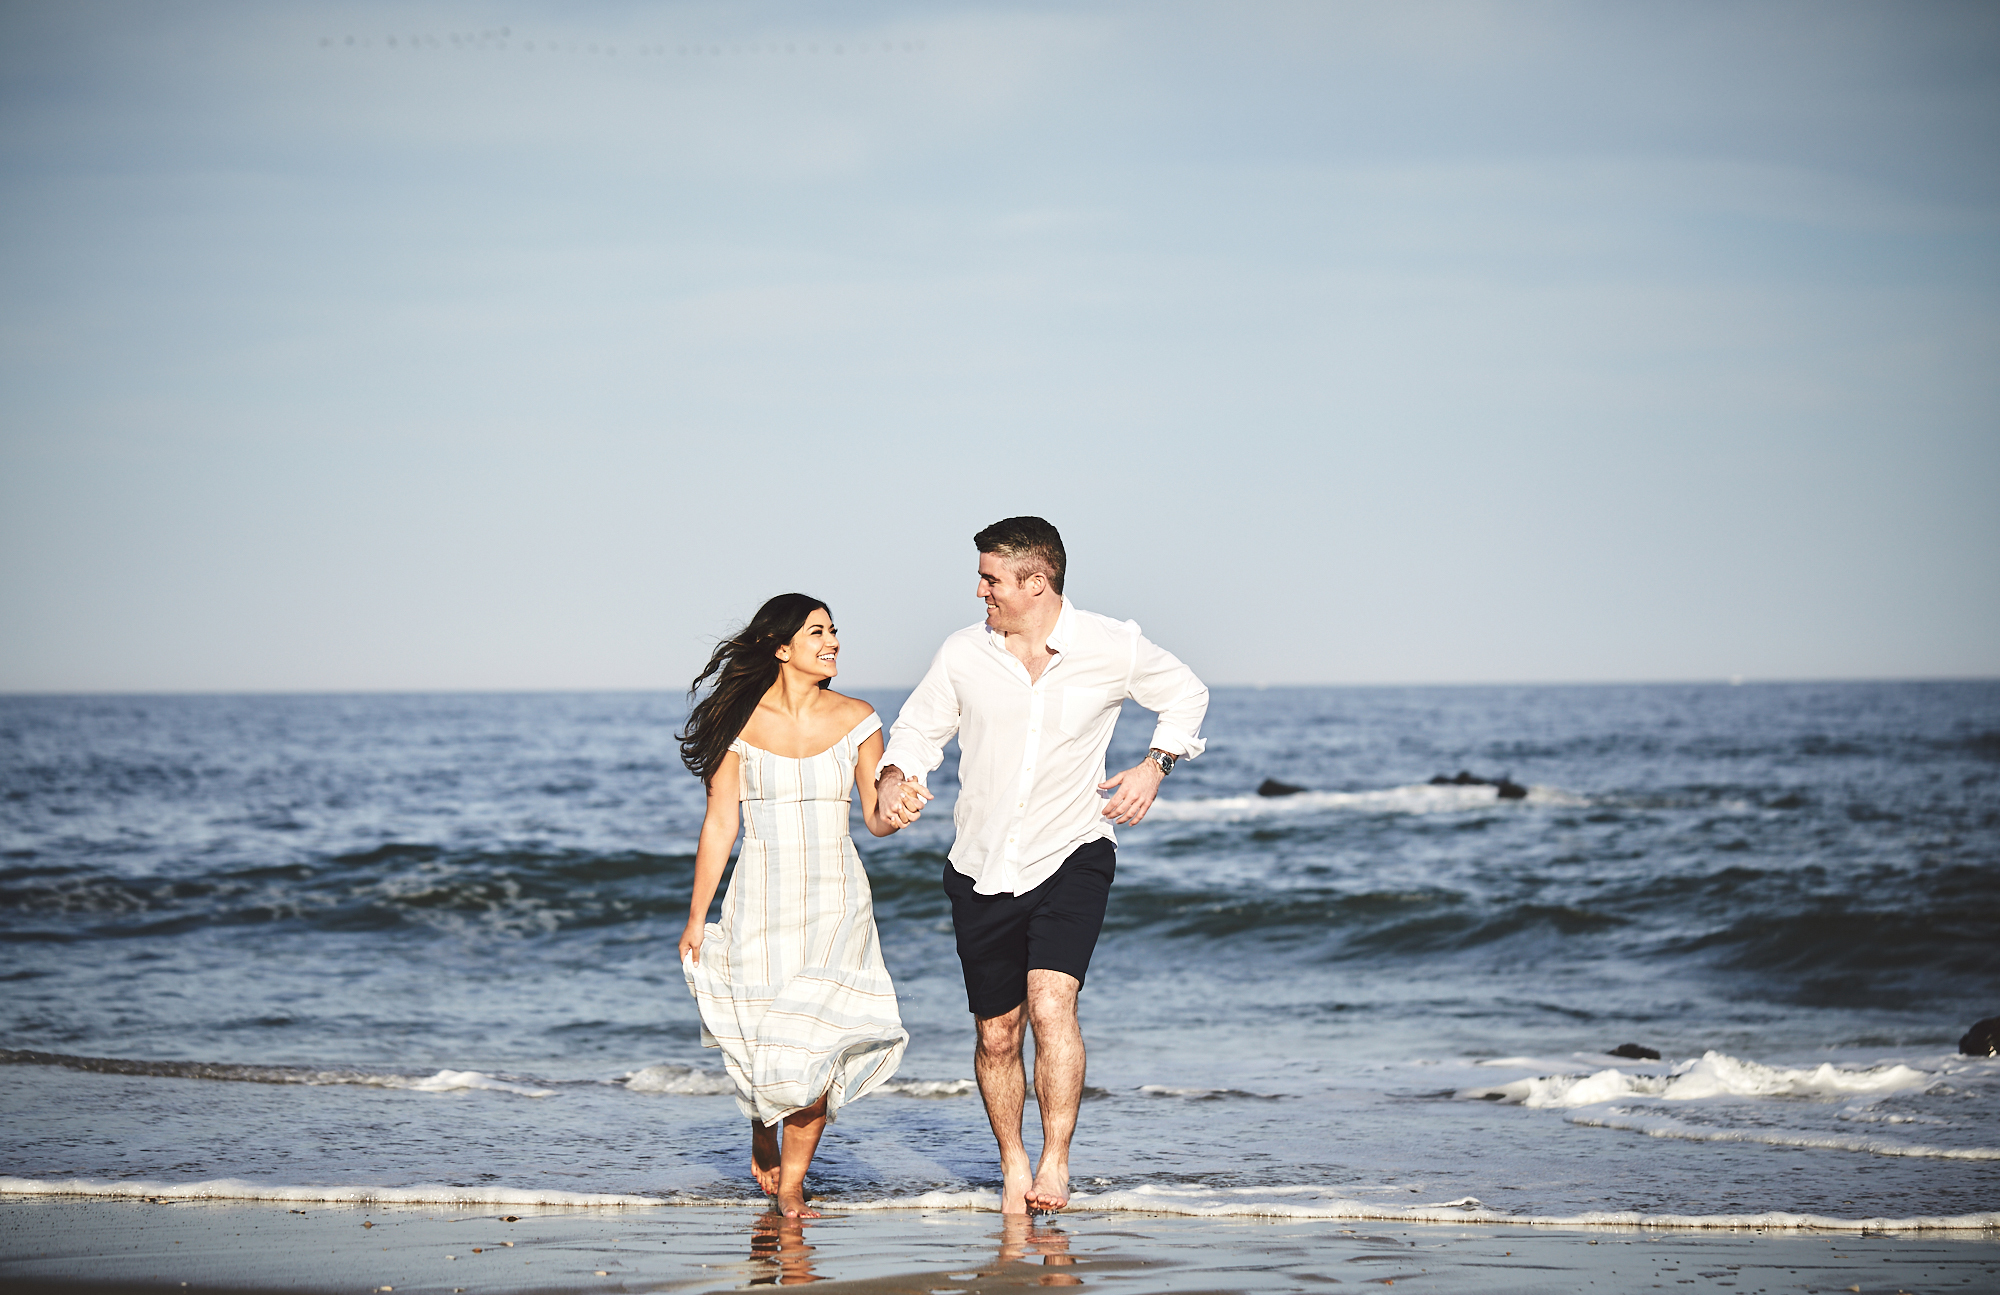 190516_SummerSpringLakeNJDivineParkEngagementSession_By_BriJohnsonWeddings0014.jpg